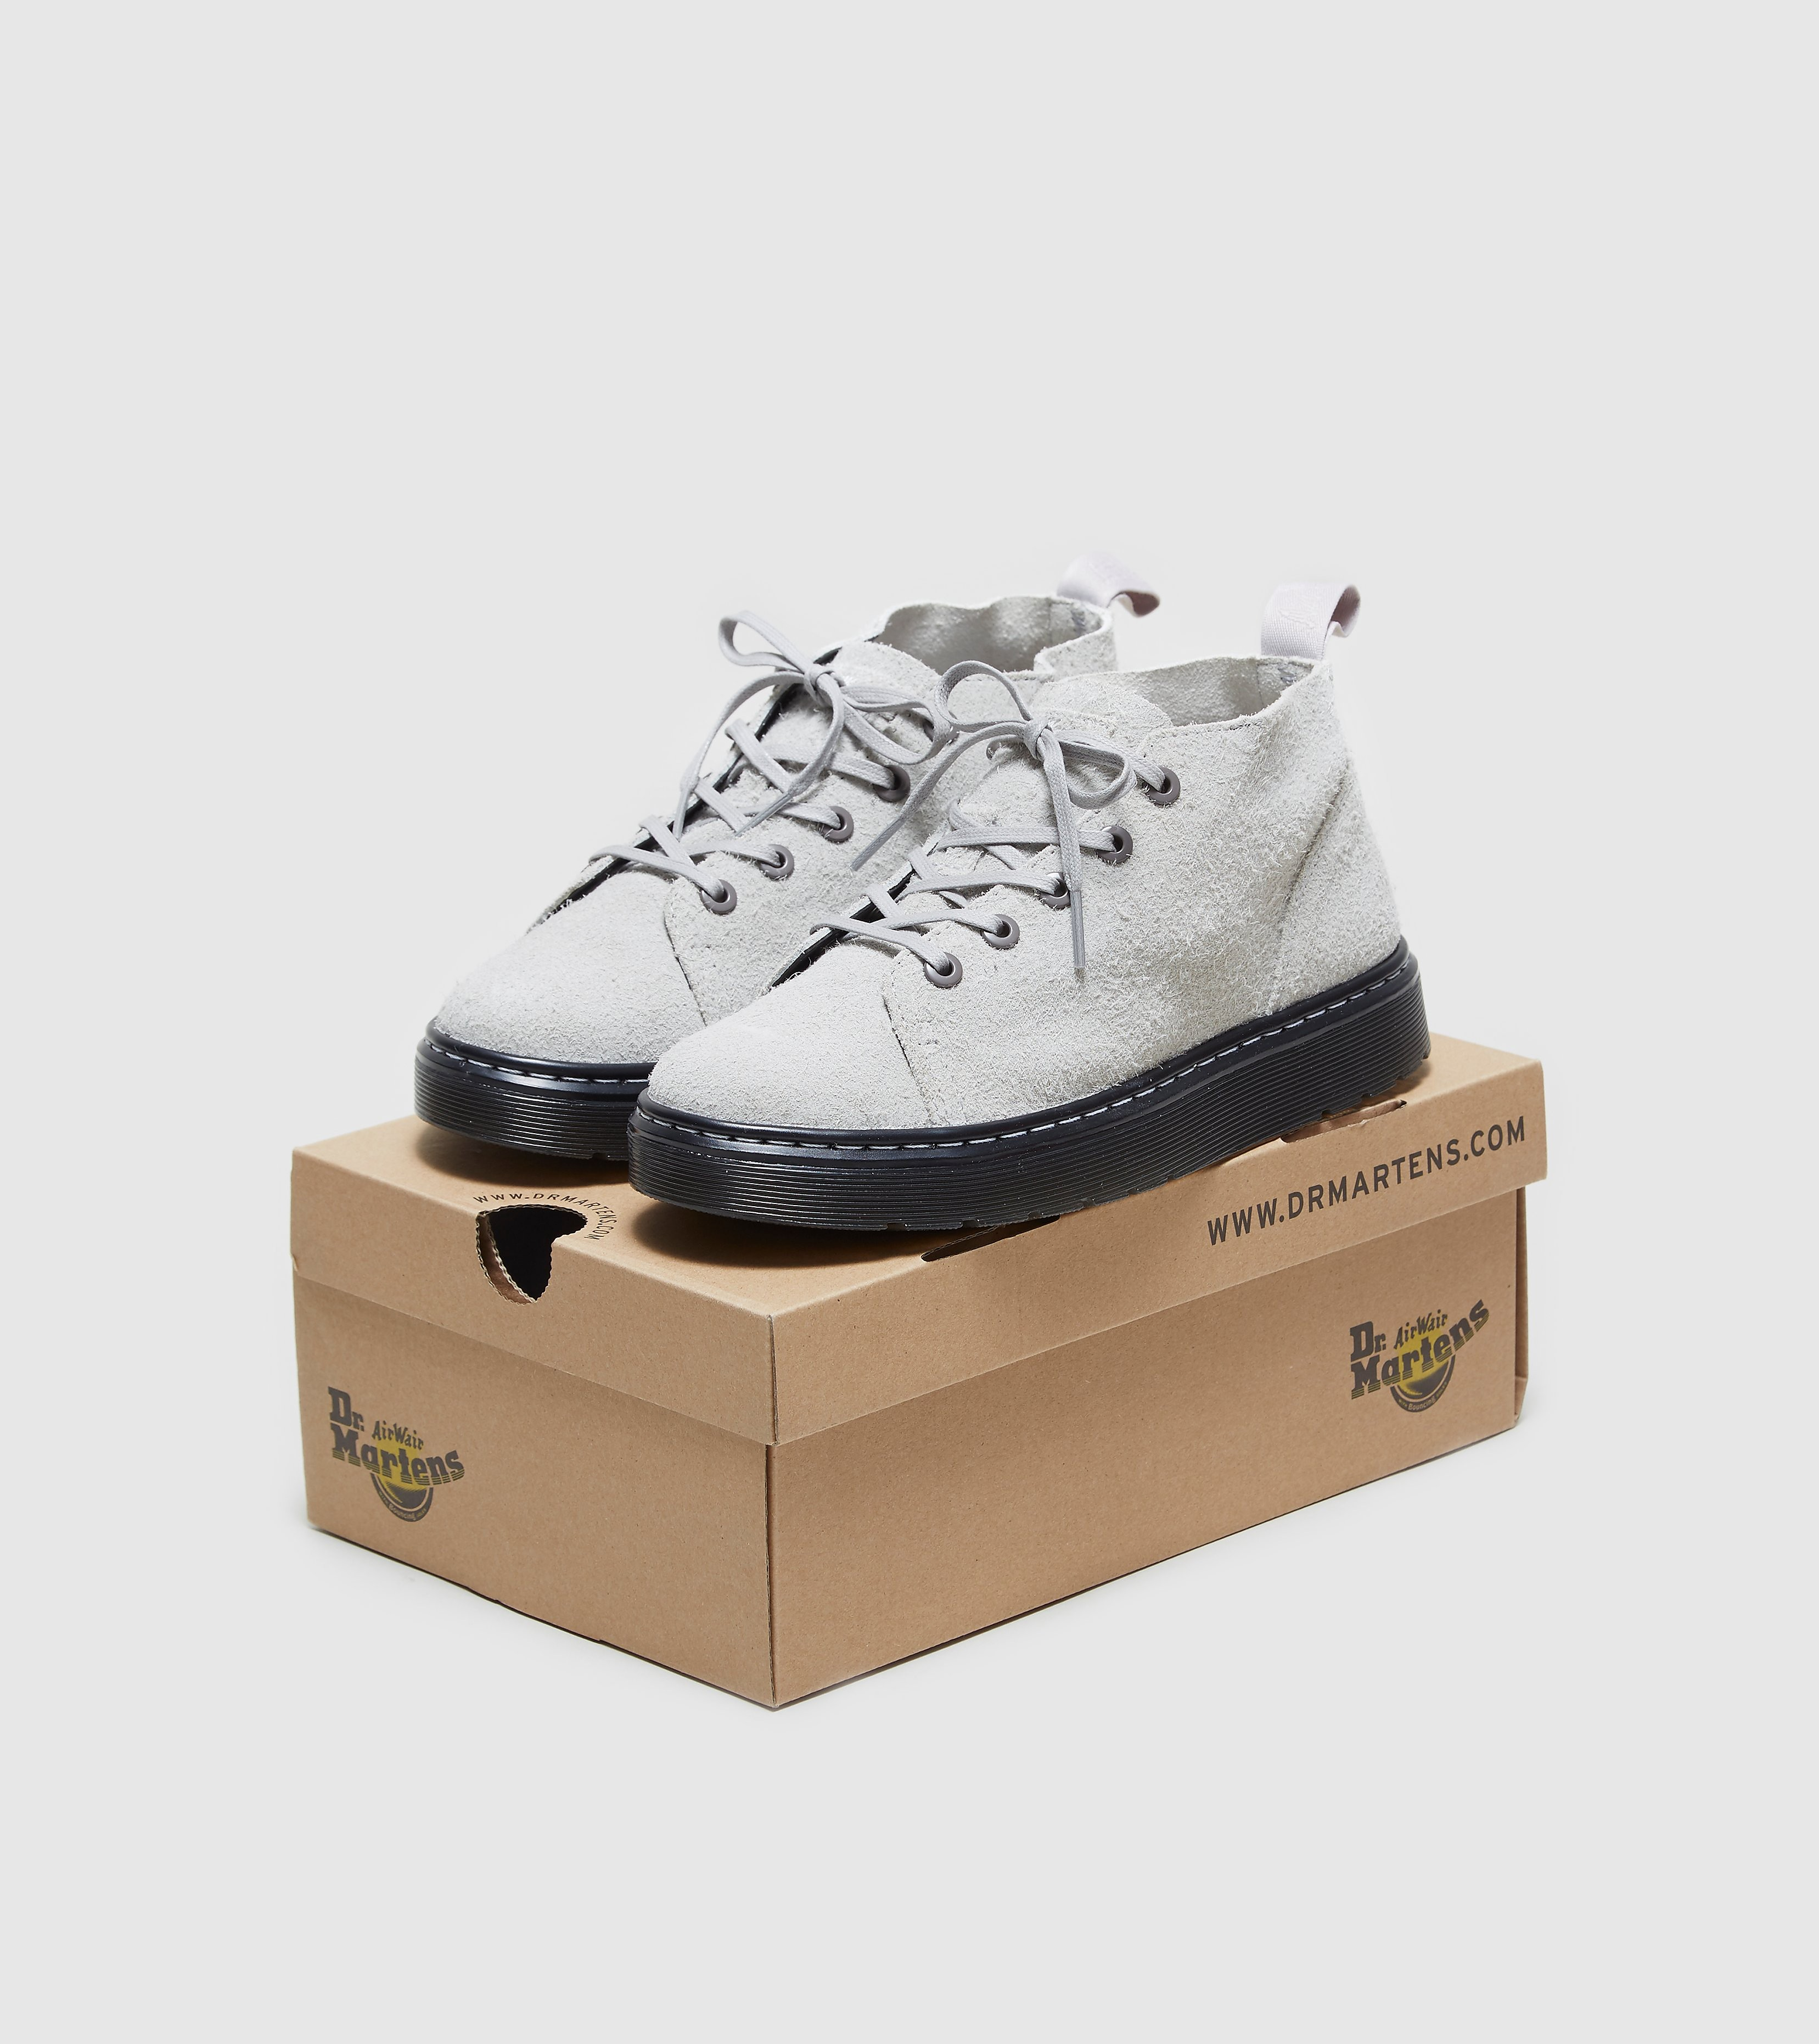 DR. MARTENS Baynes Wooly Suede Boots Women's